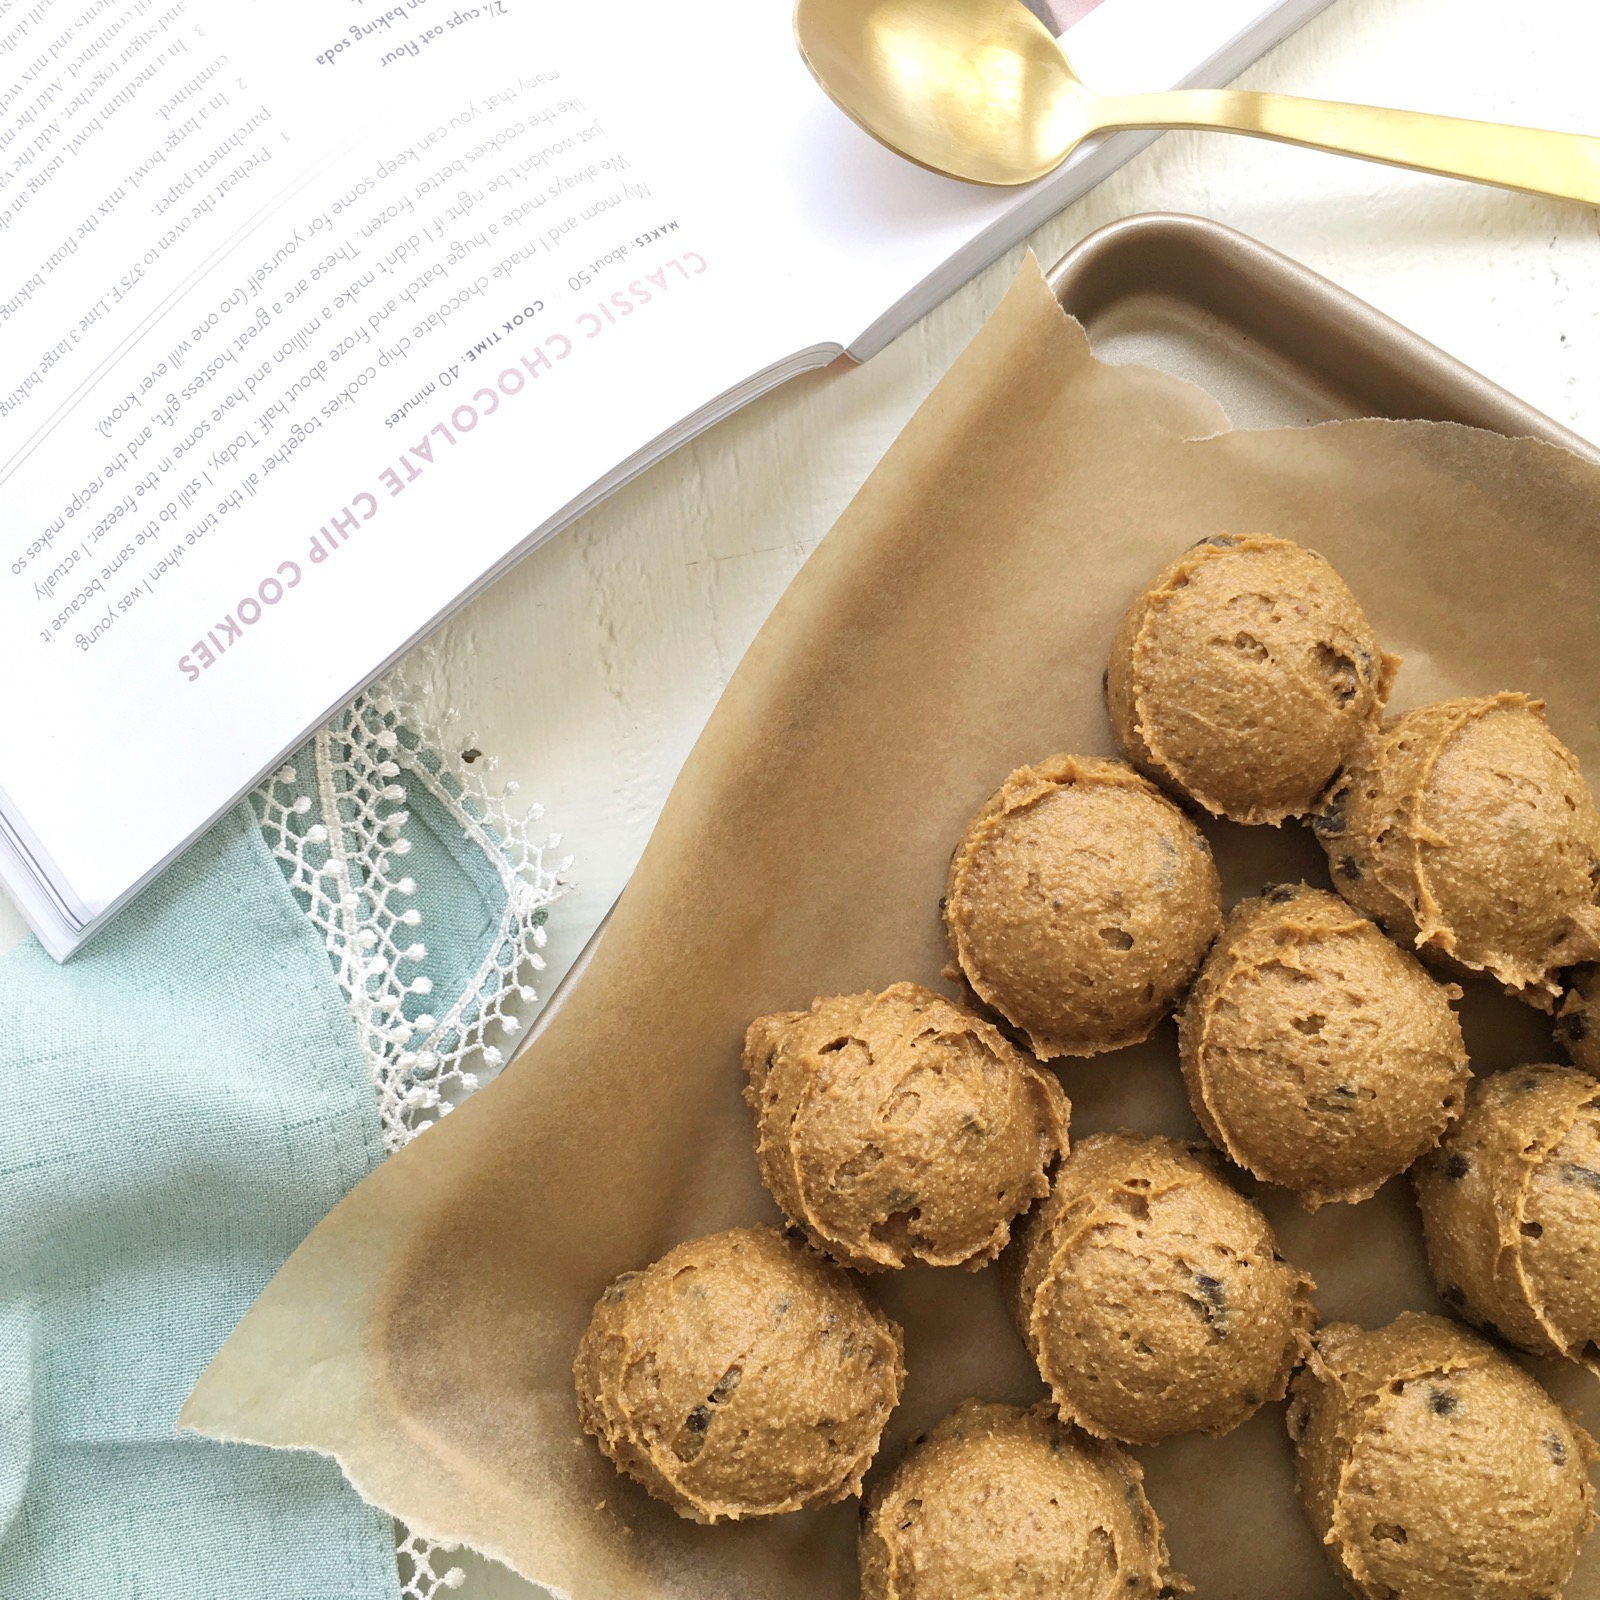 Kristin Cavallari's Grain Free Chocolate Chip Cookie Recipe